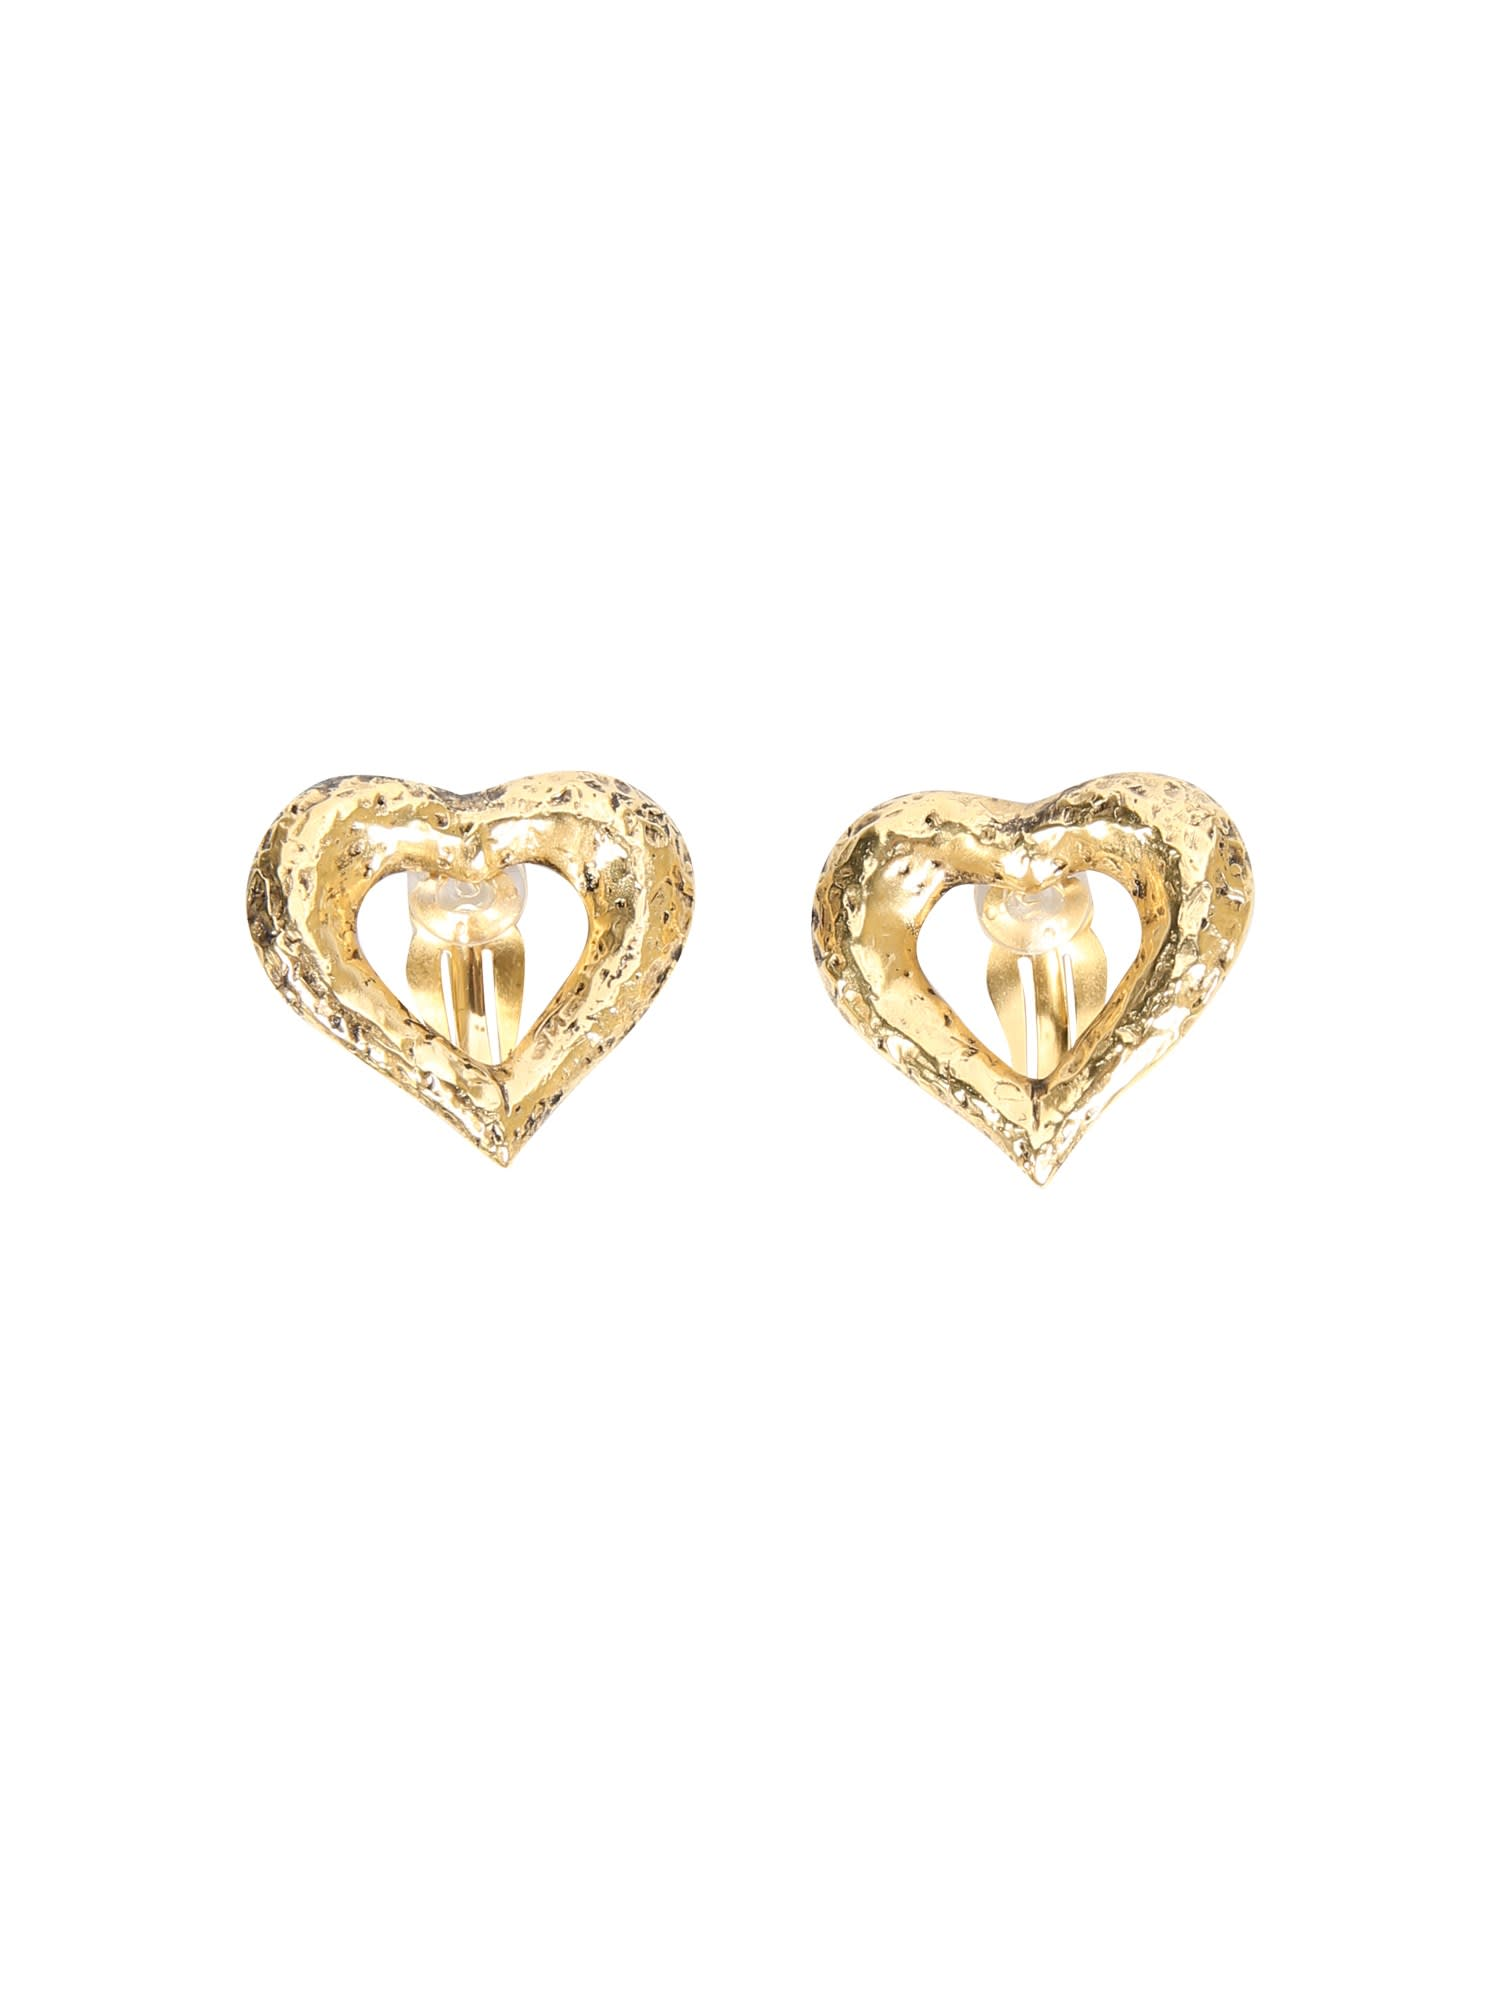 Saint Laurent Clip Earrings